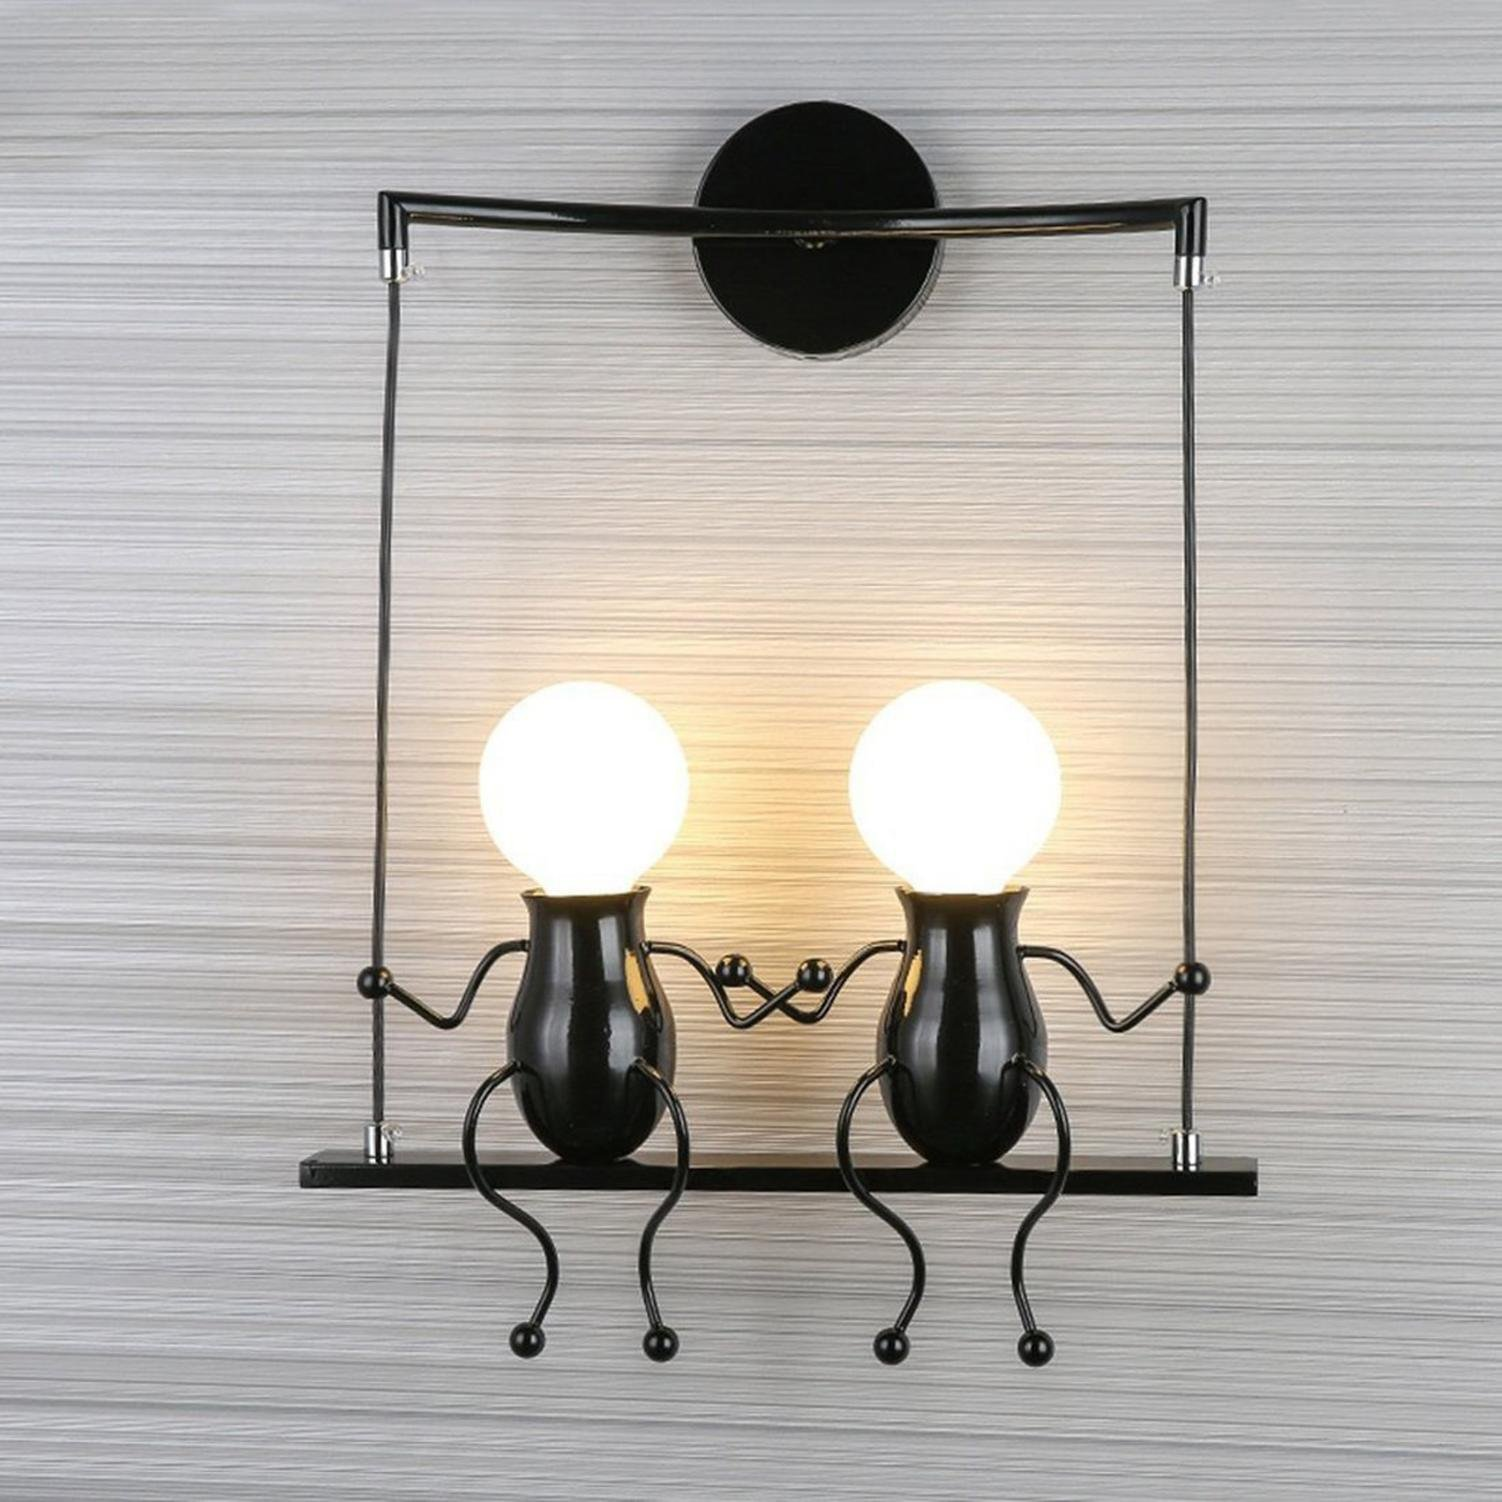 GRFH Nursery wall lamp modern living room bedroom bedside wall lamp creative character corridor wall lamp corridor children room wall Lamp , black double head